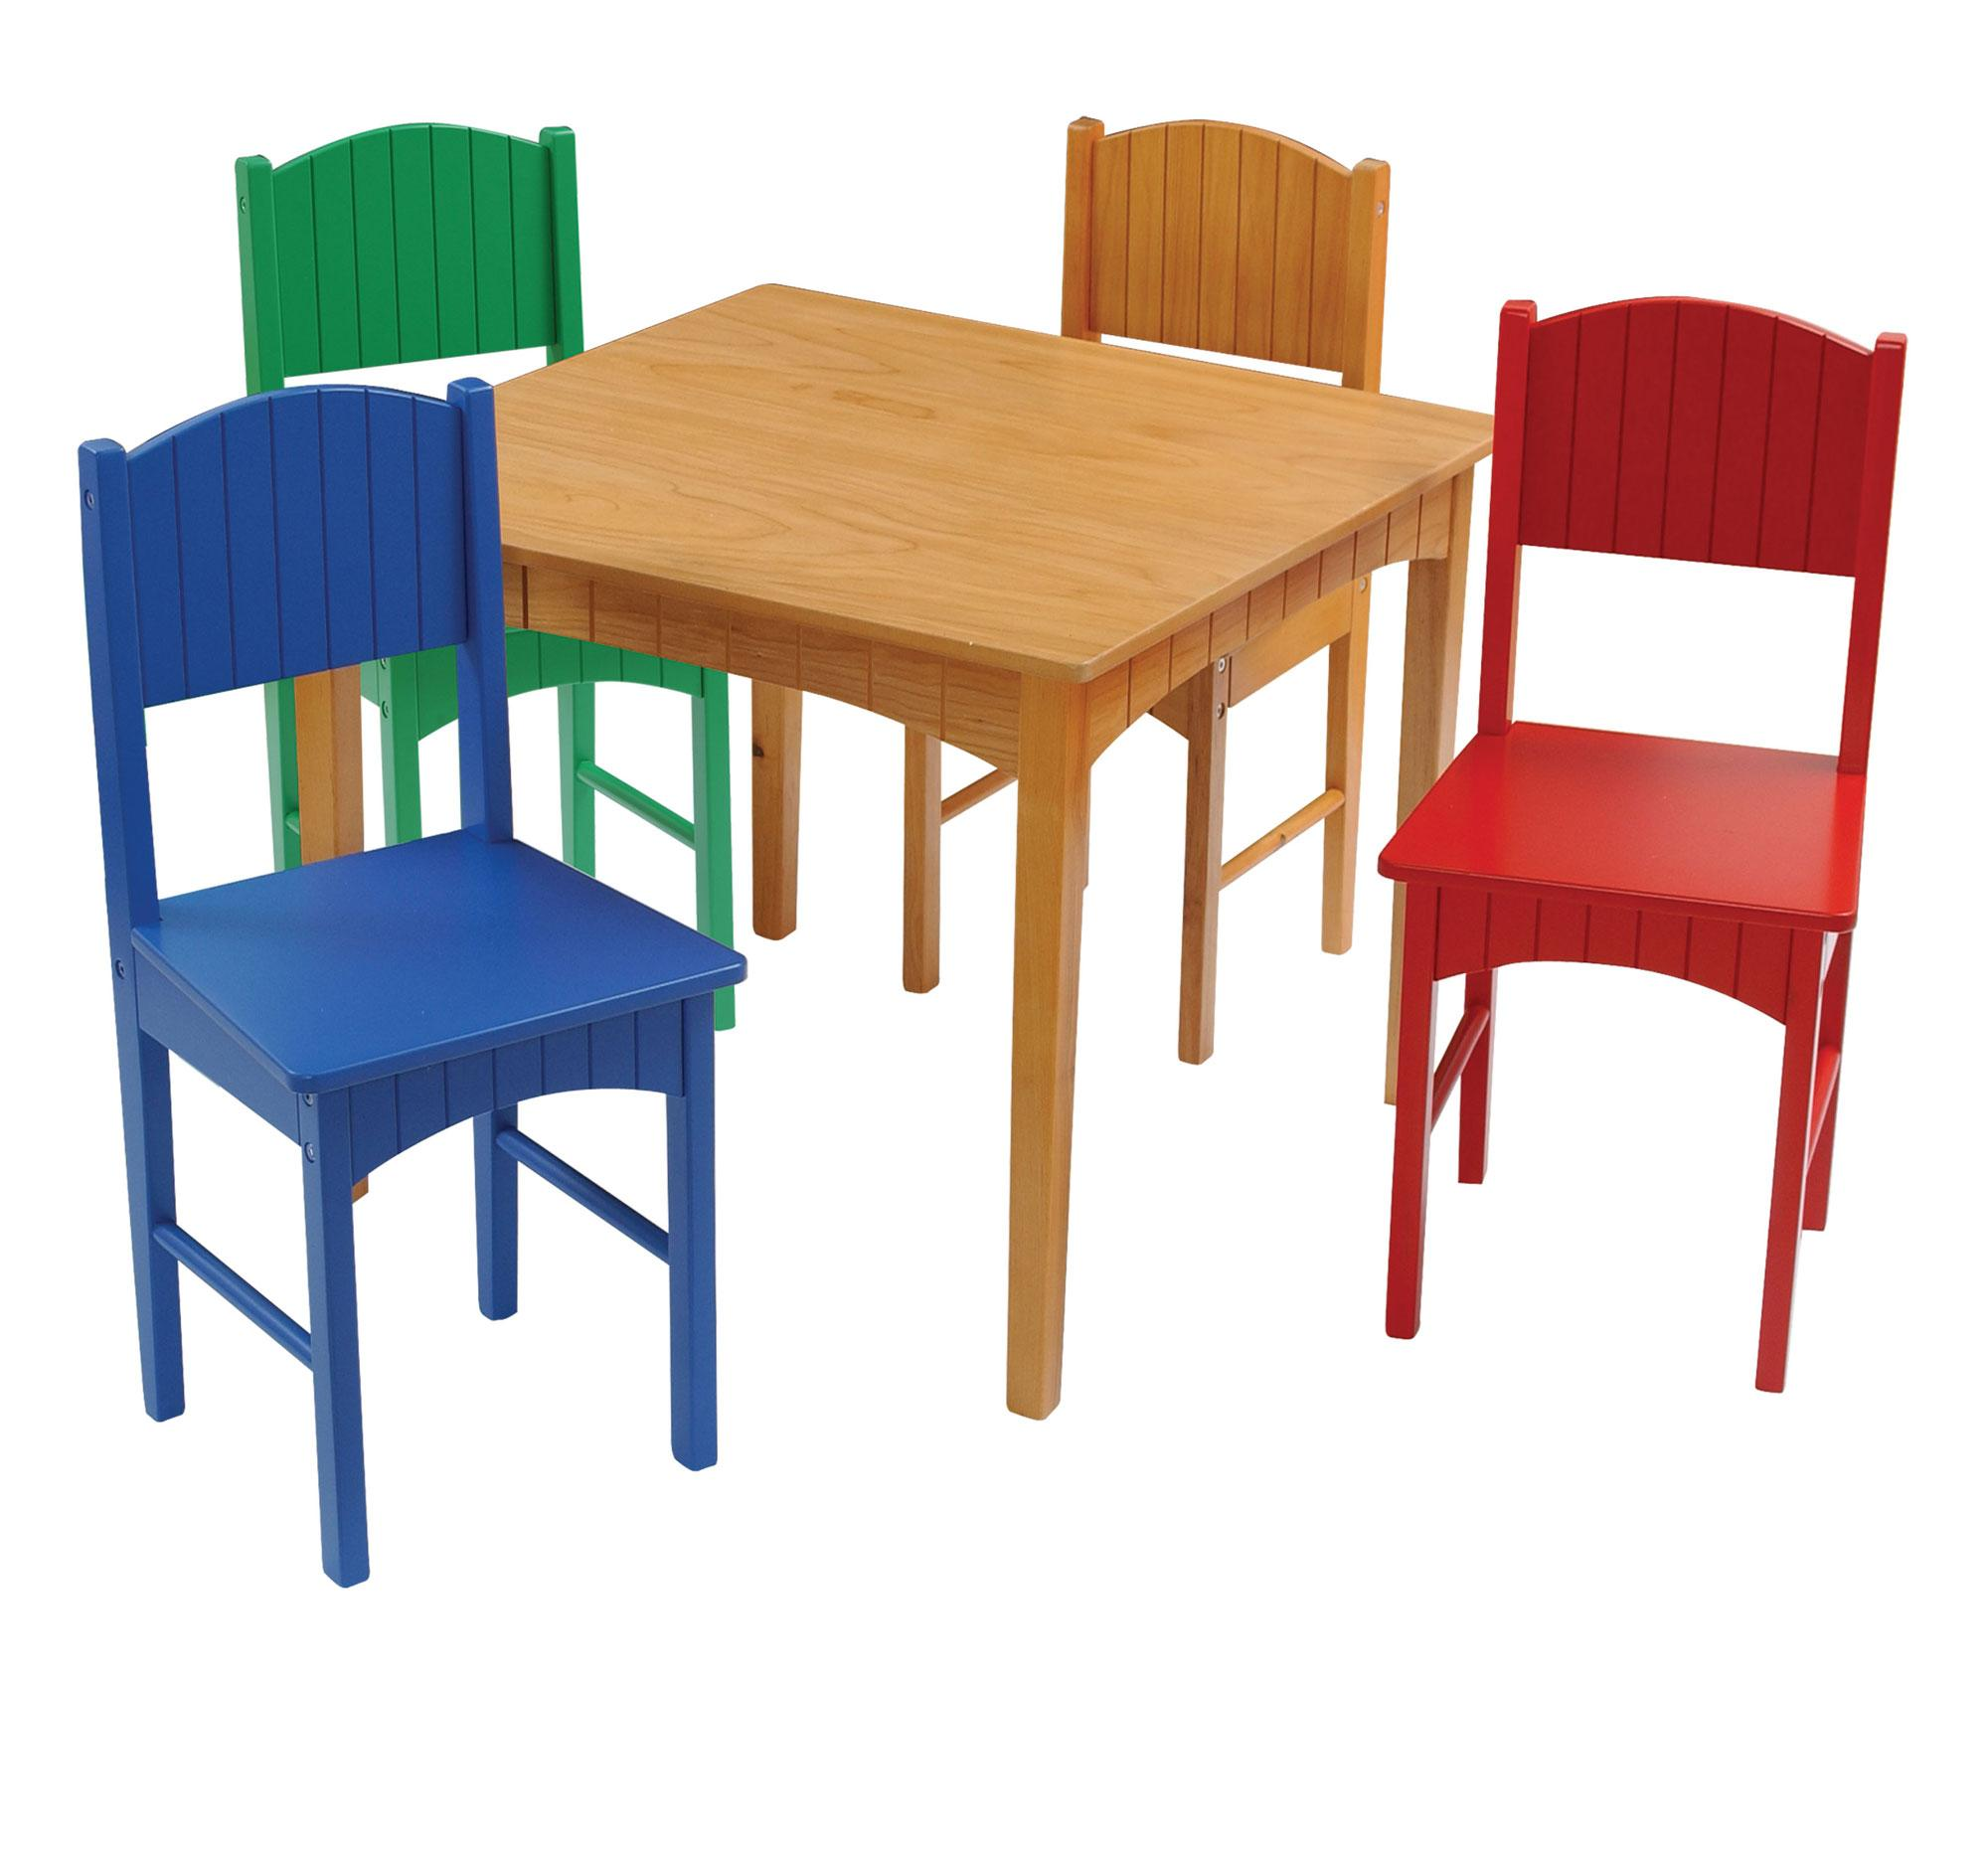 c0539929b1e Natural Wood Kindergarten Table 2 - athath Office Furniture